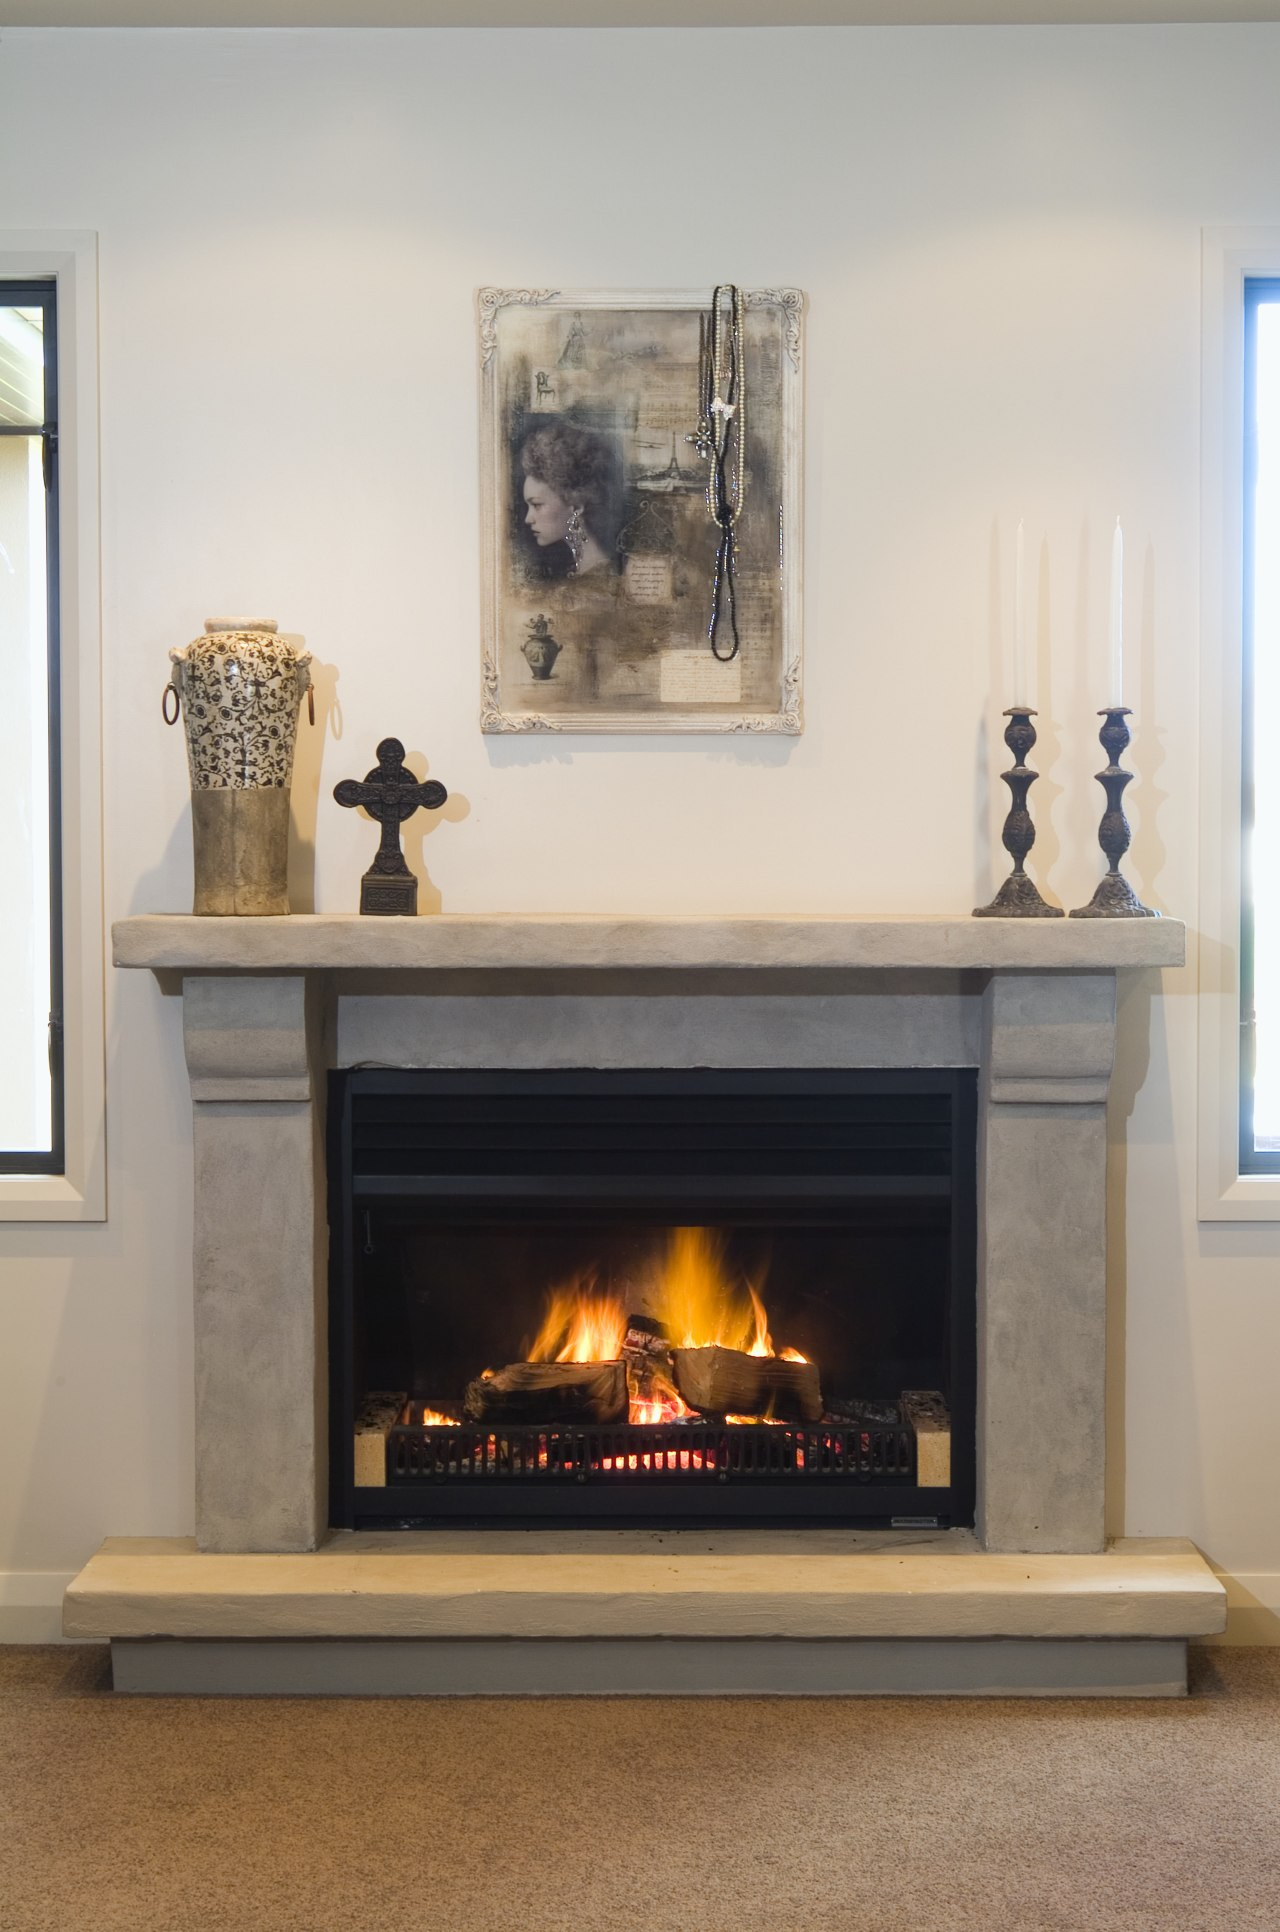 In keeping with the modern rustic aesthetic of fireplace, hearth, heat, home, interior design, living room, wood burning stove, gray